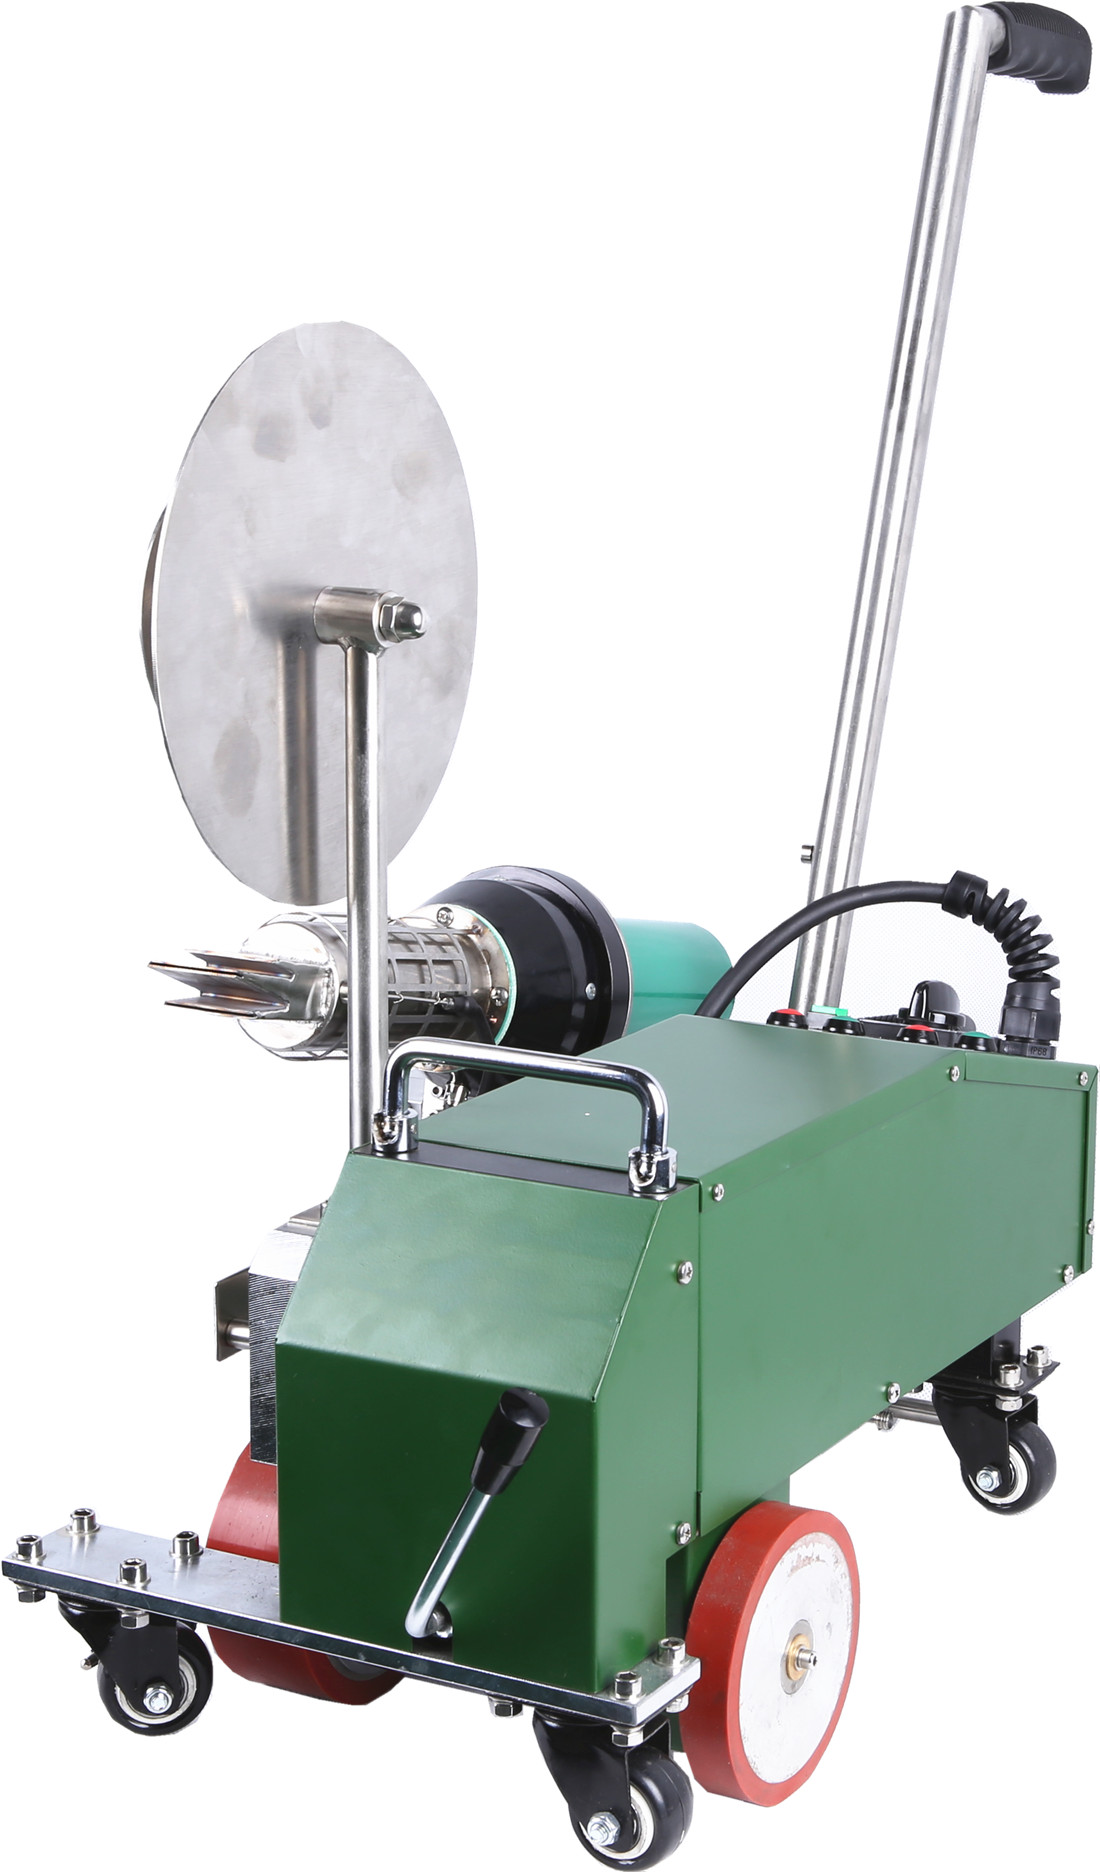 SWT-MAT2 Poly material welder for the welding of thermoplastic tapes